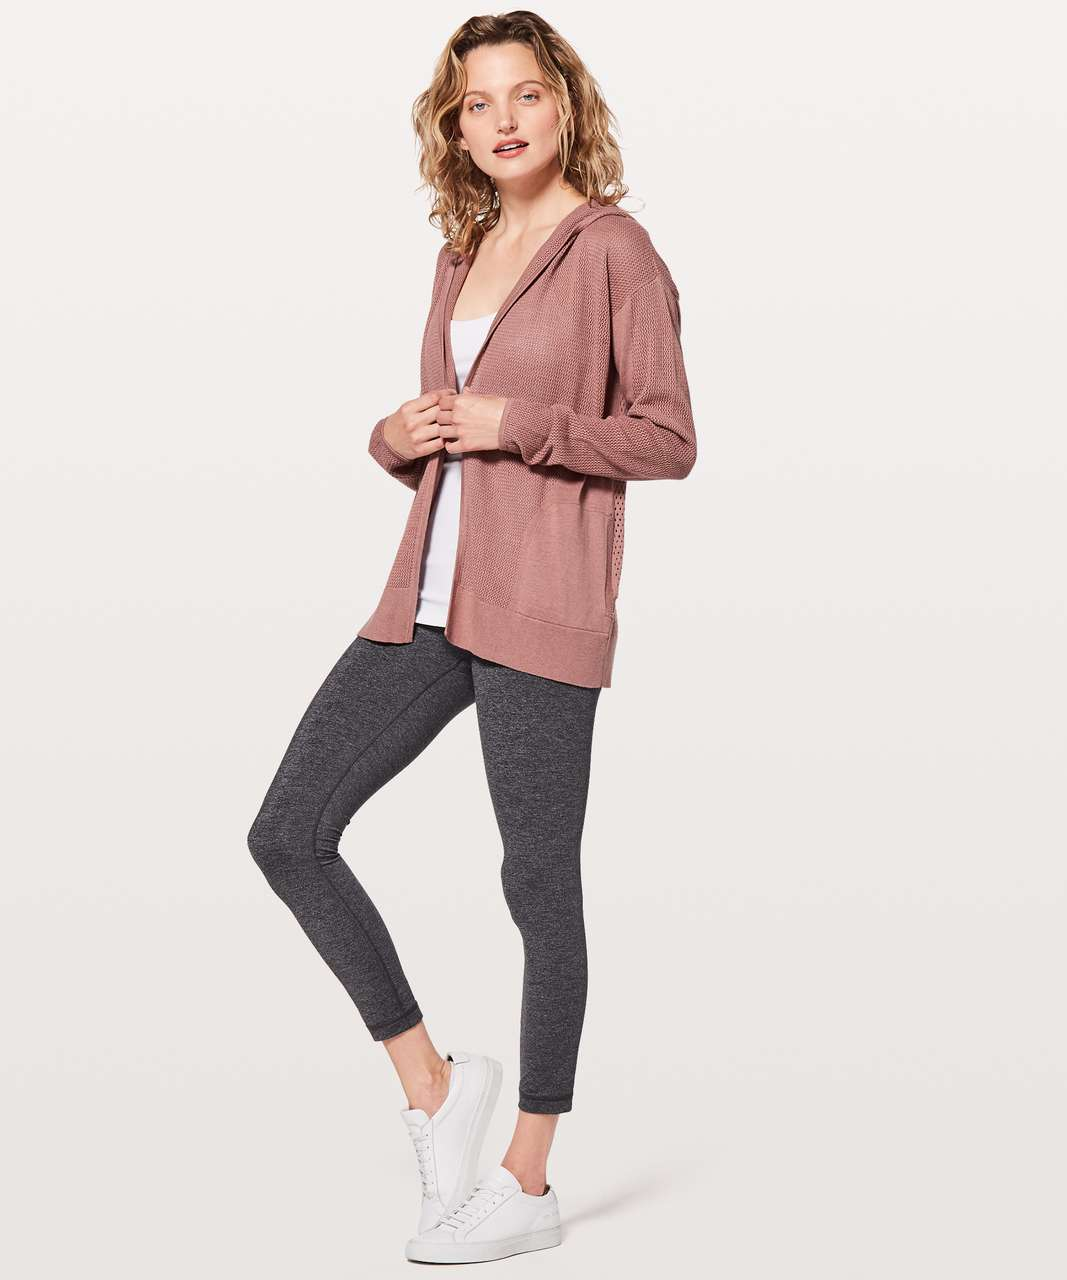 Lululemon Still Movement Wrap - Heathered Quicksand